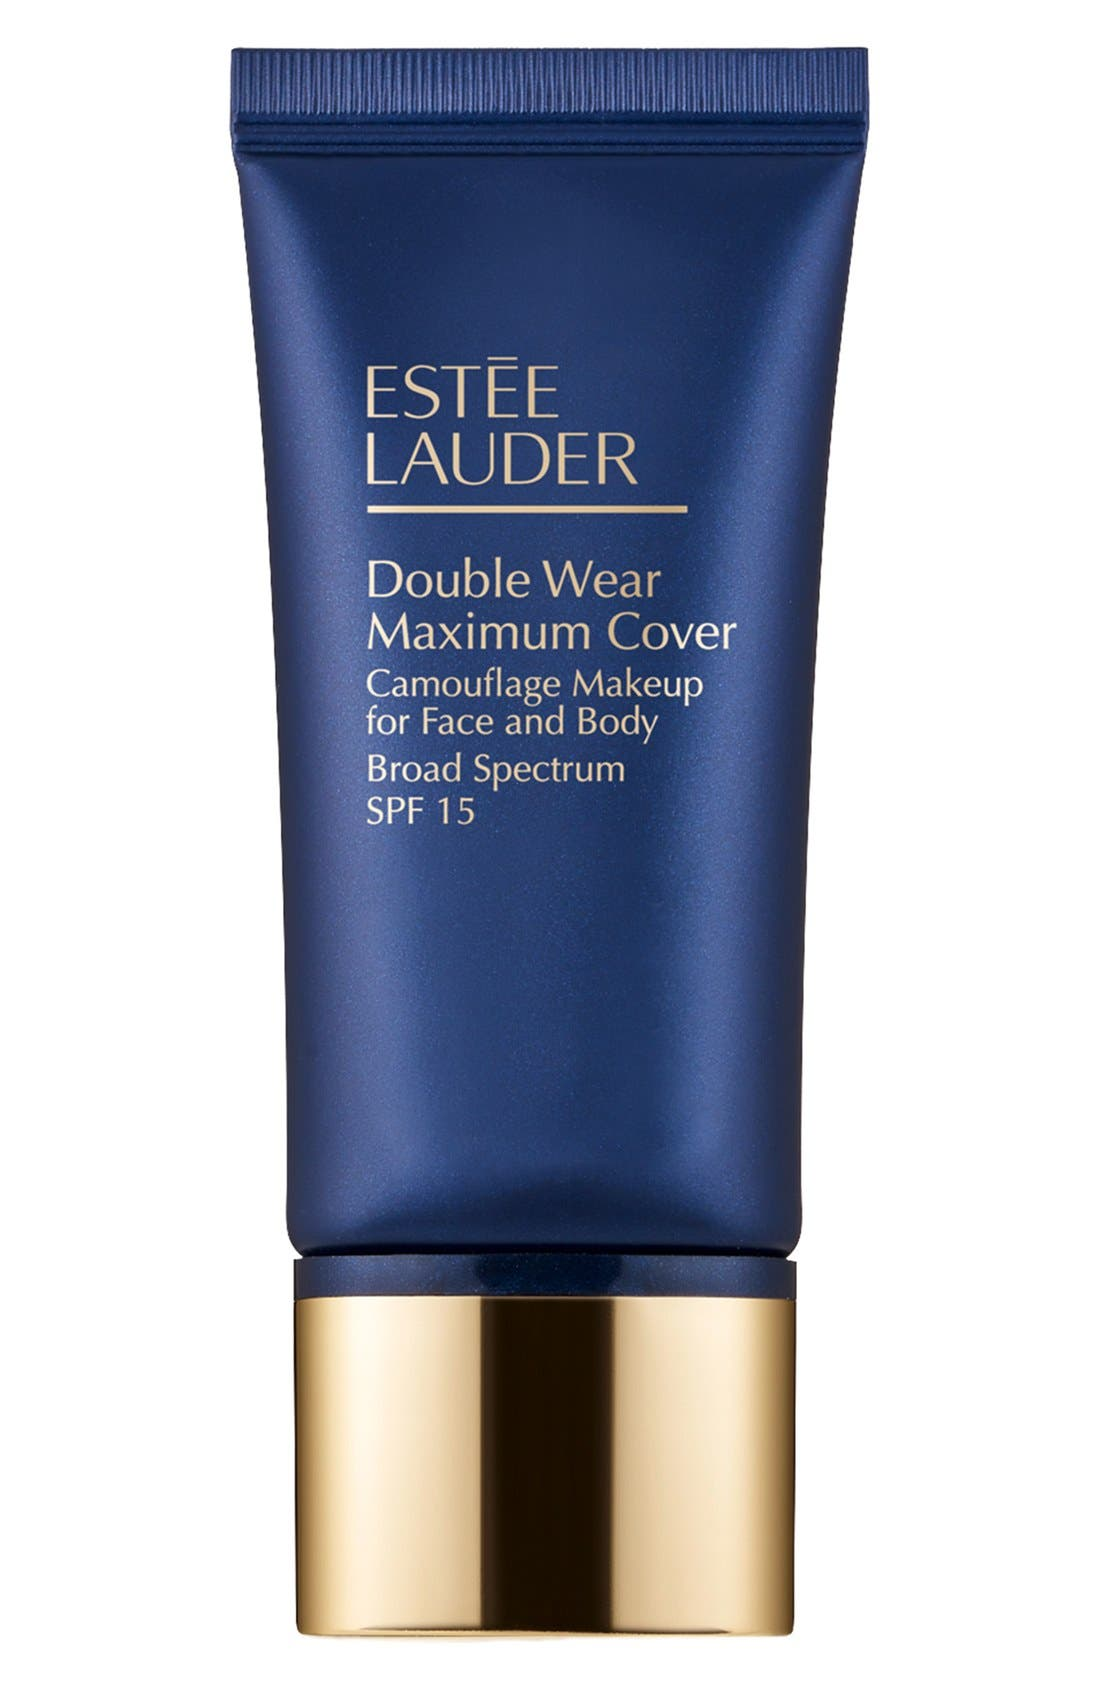 Estee Lauder Double Wear Maximum Cover Camouflage Makeup For Face And Body Spf 15 - 1C1 Cool Bone